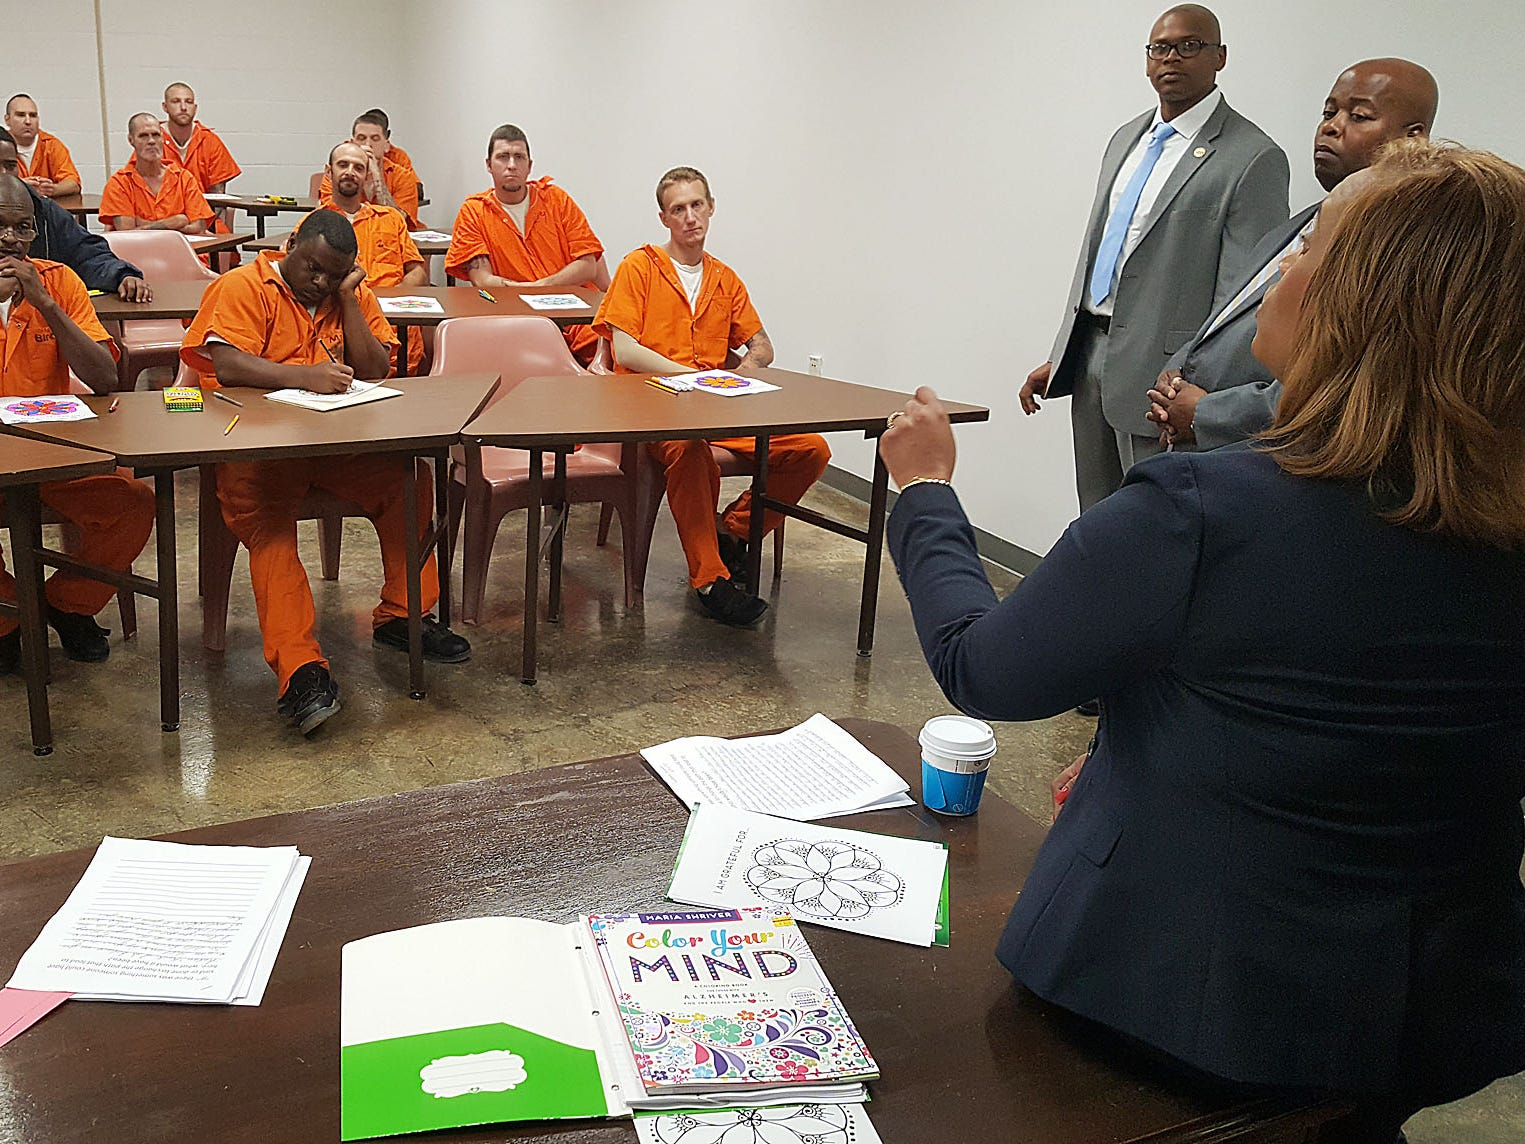 Mississippi Corrections Commissioner Pelicia Hall speaks to offenders at the Technical Violations Center in Greenwood. The center, housed in the old Delta Correctional Facility, is designed to keep offenders from returning to prison if they are guilty only of a few technical violations.